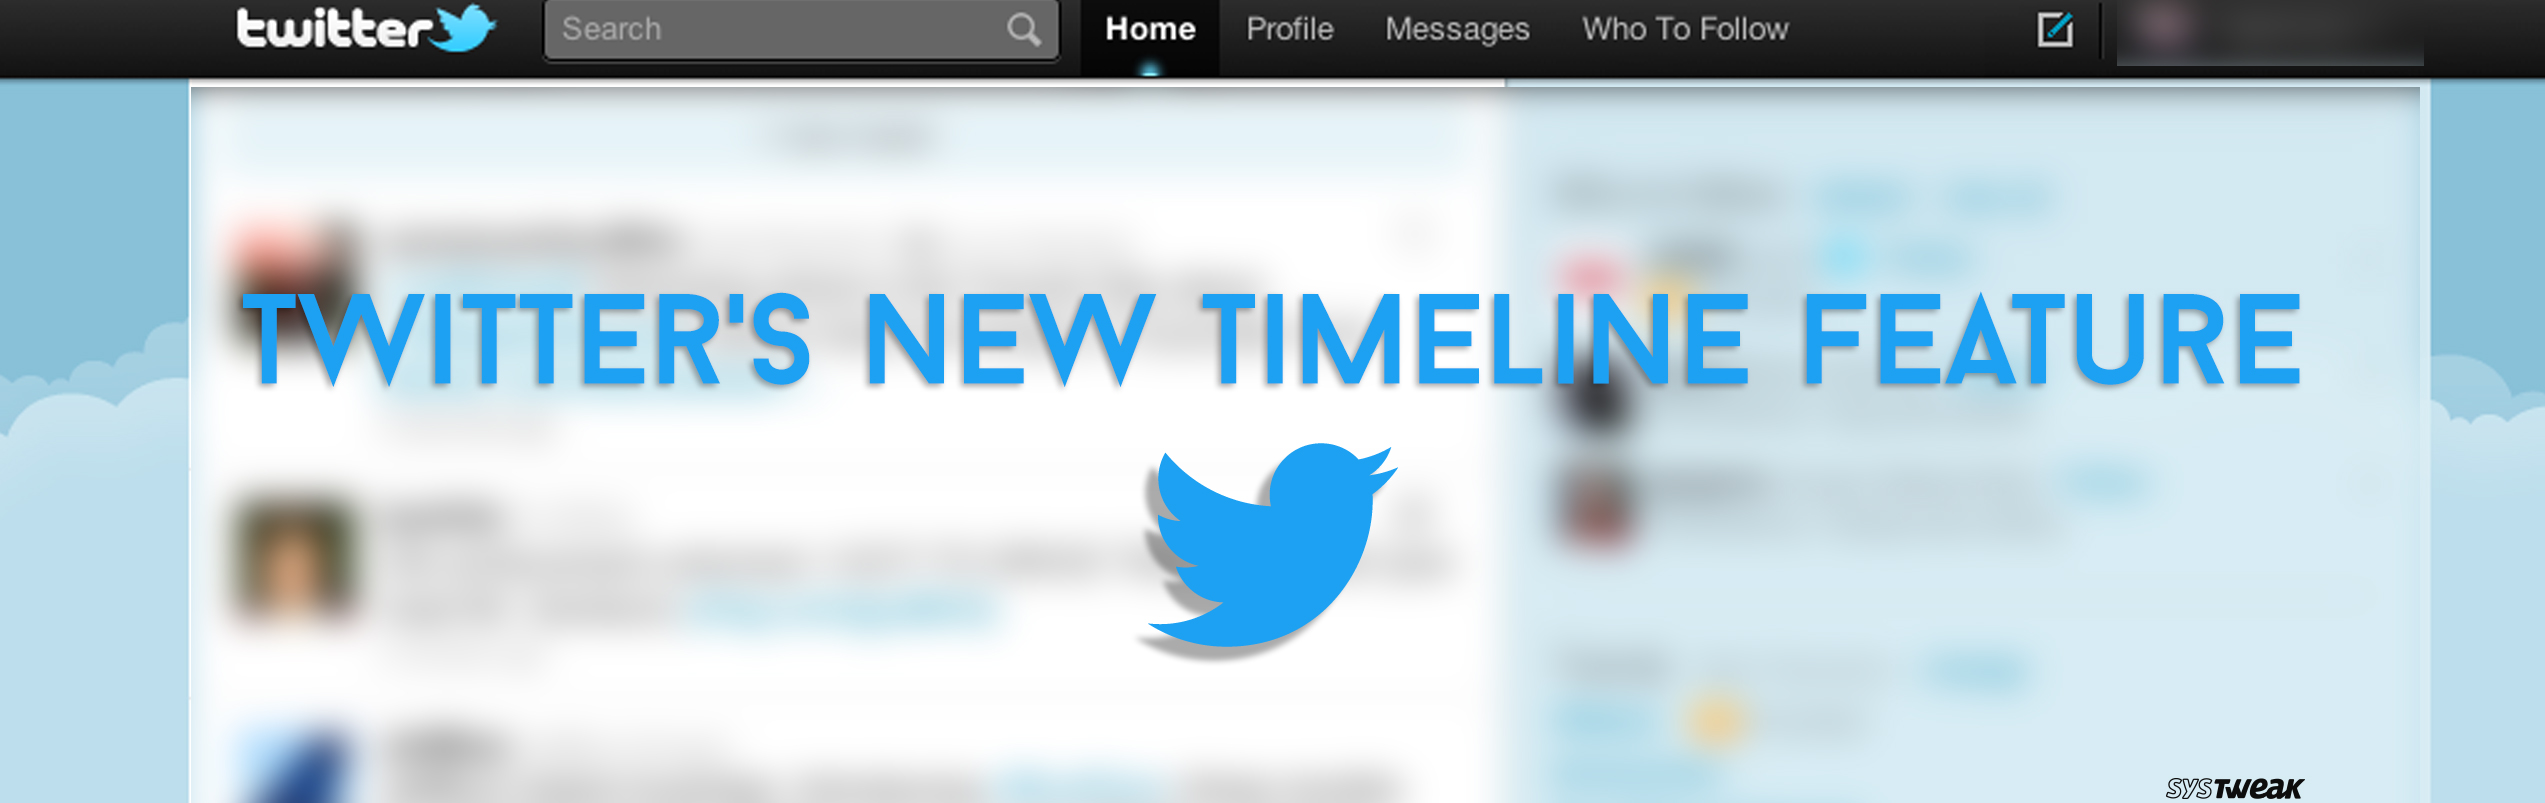 Twitter Rolls Out New Timeline Feature